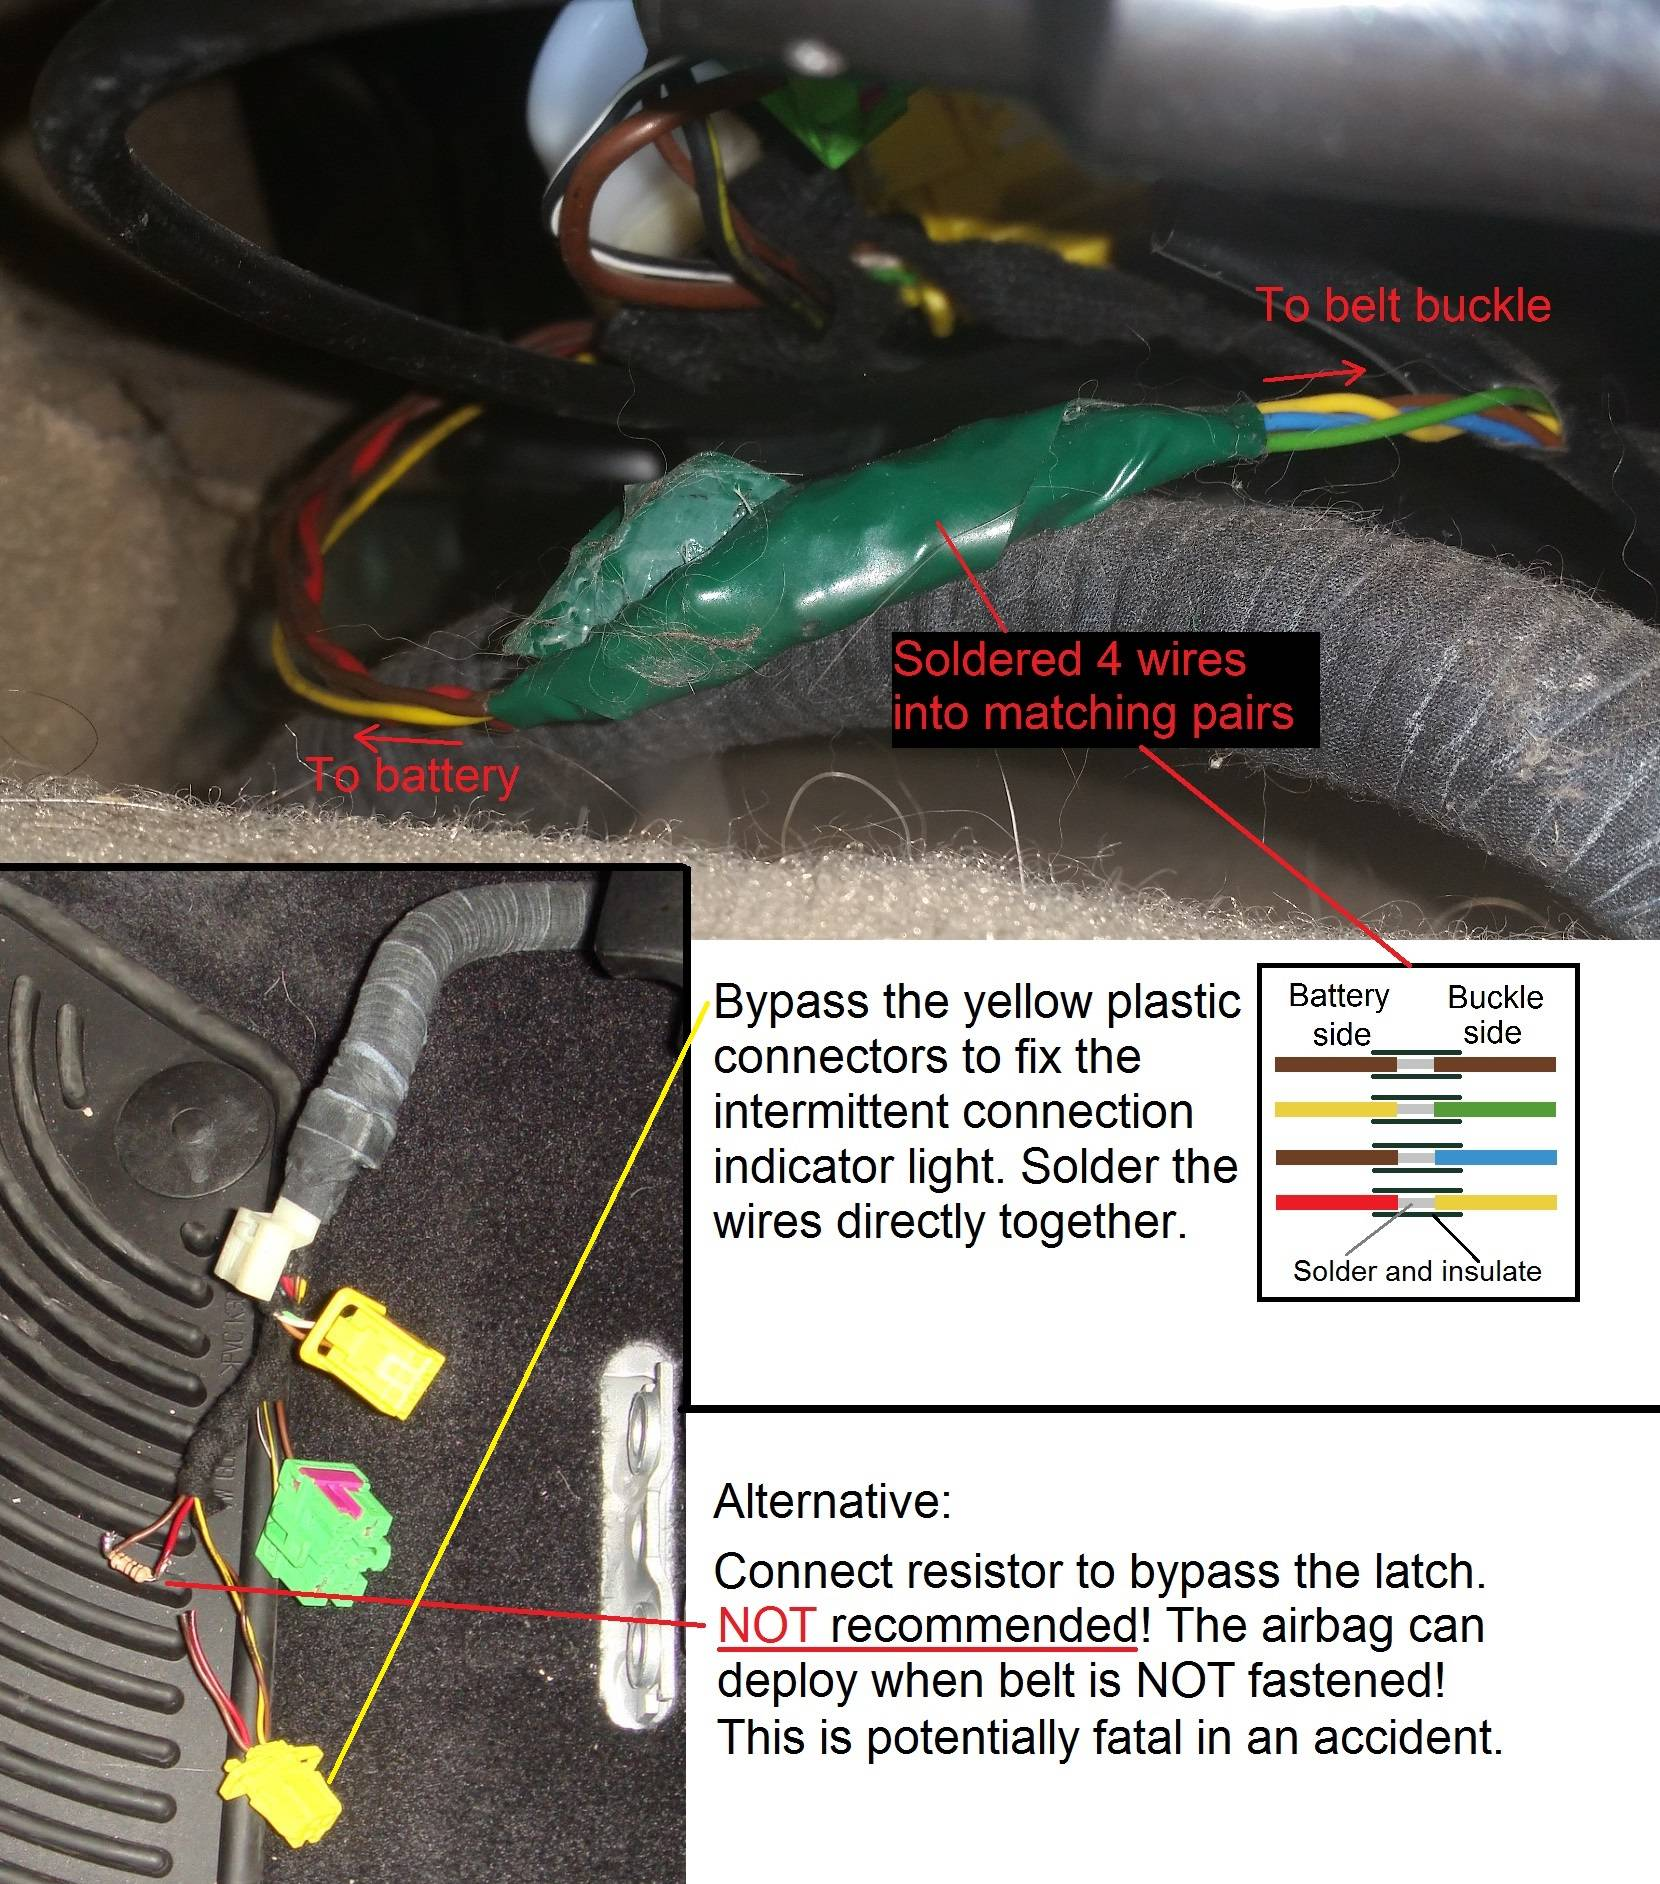 hight resolution of wiring vw mk4 golf gti airbag indicator warning light motor rh mechanics stackexchange com air bag harness repair 2005 gmc airbag wiring diagram